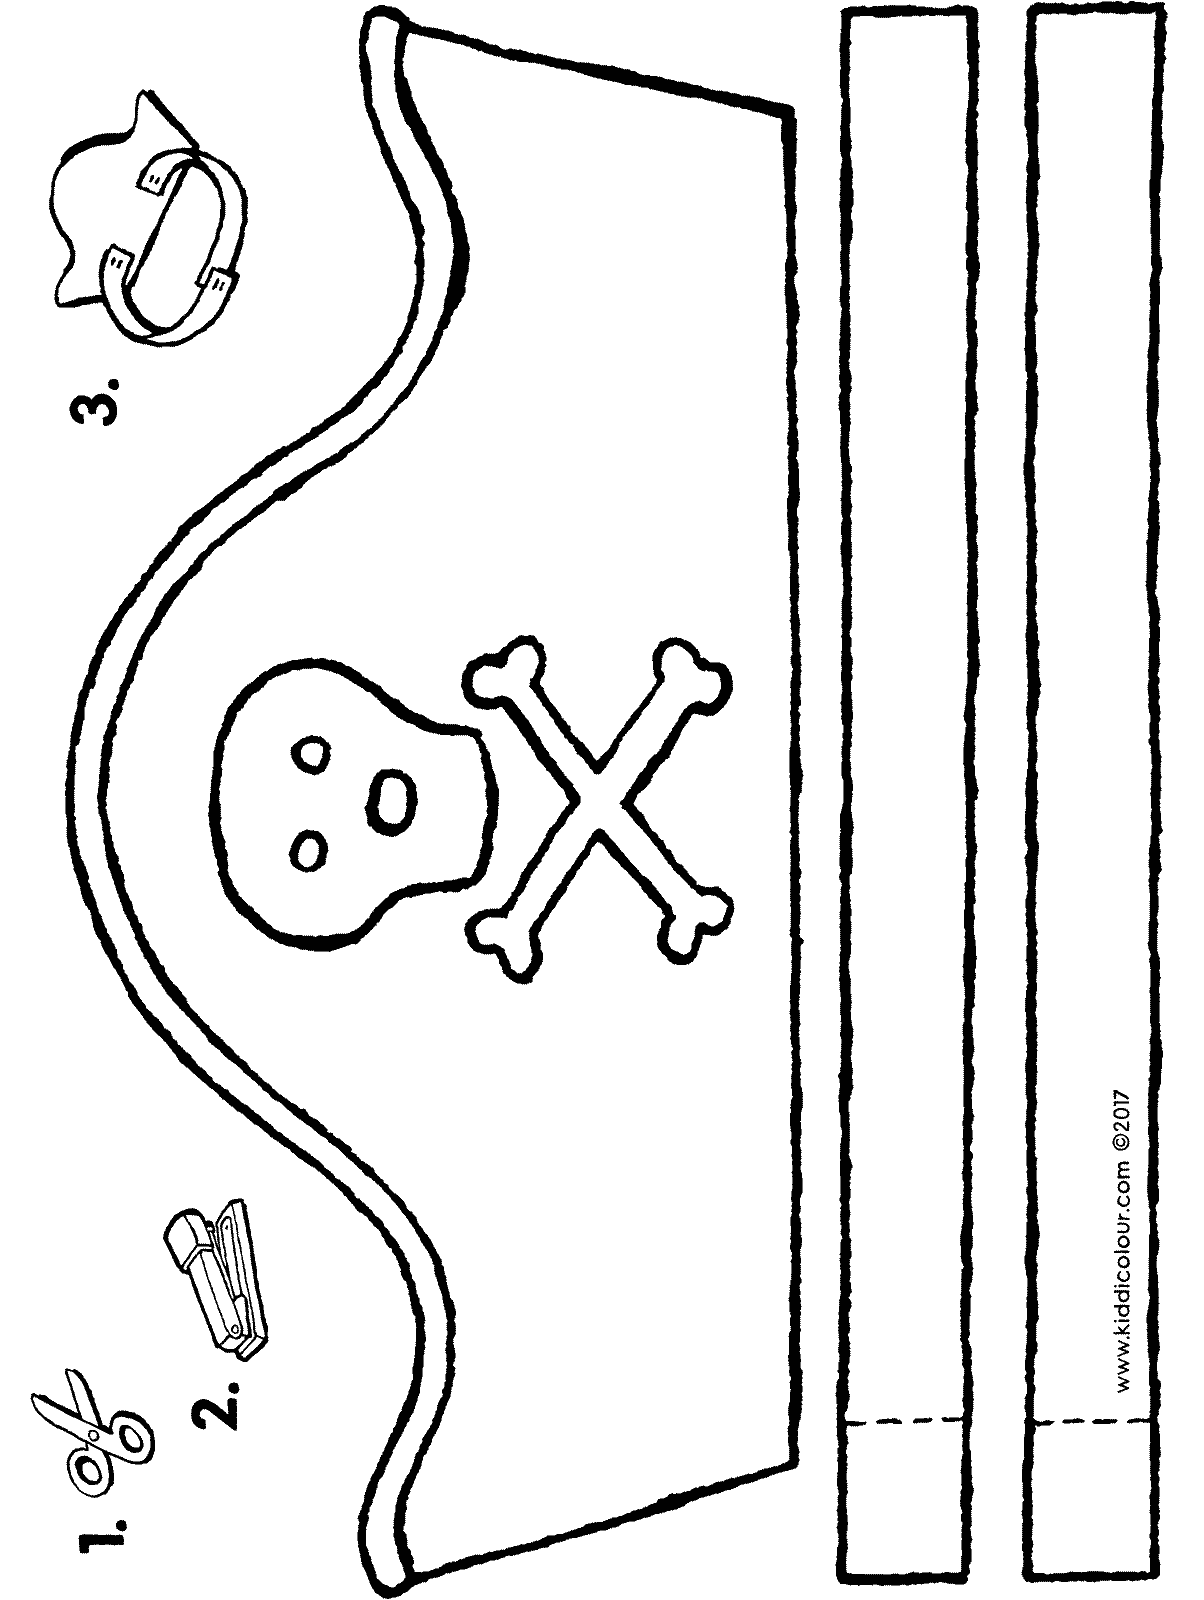 pirate hat crafts colouring page page drawing picture 01H